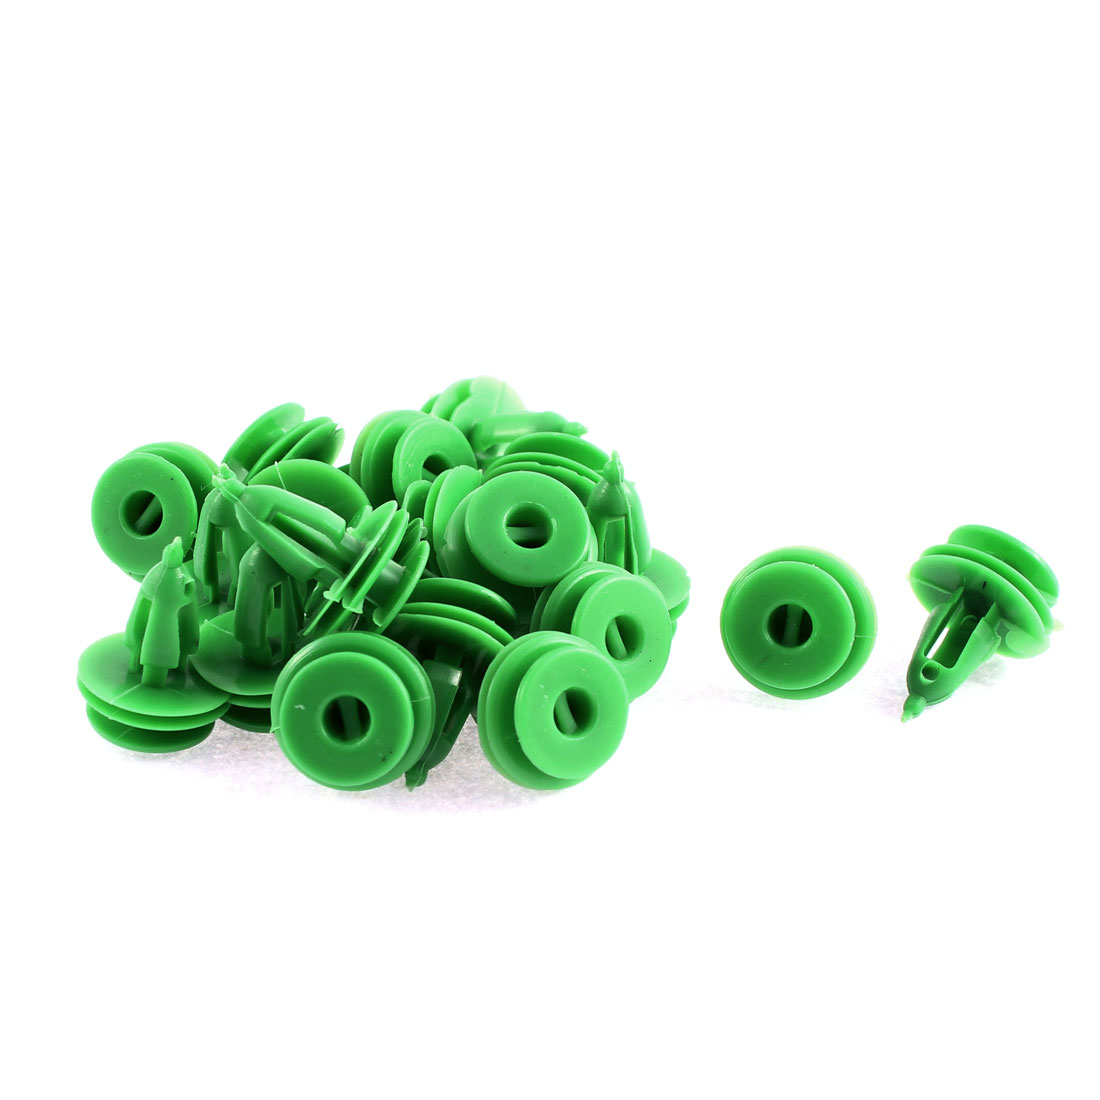 Unique Bargains 20 Pcs Green Plastic Door Trim Interior Weatherstrip Mat Rivet